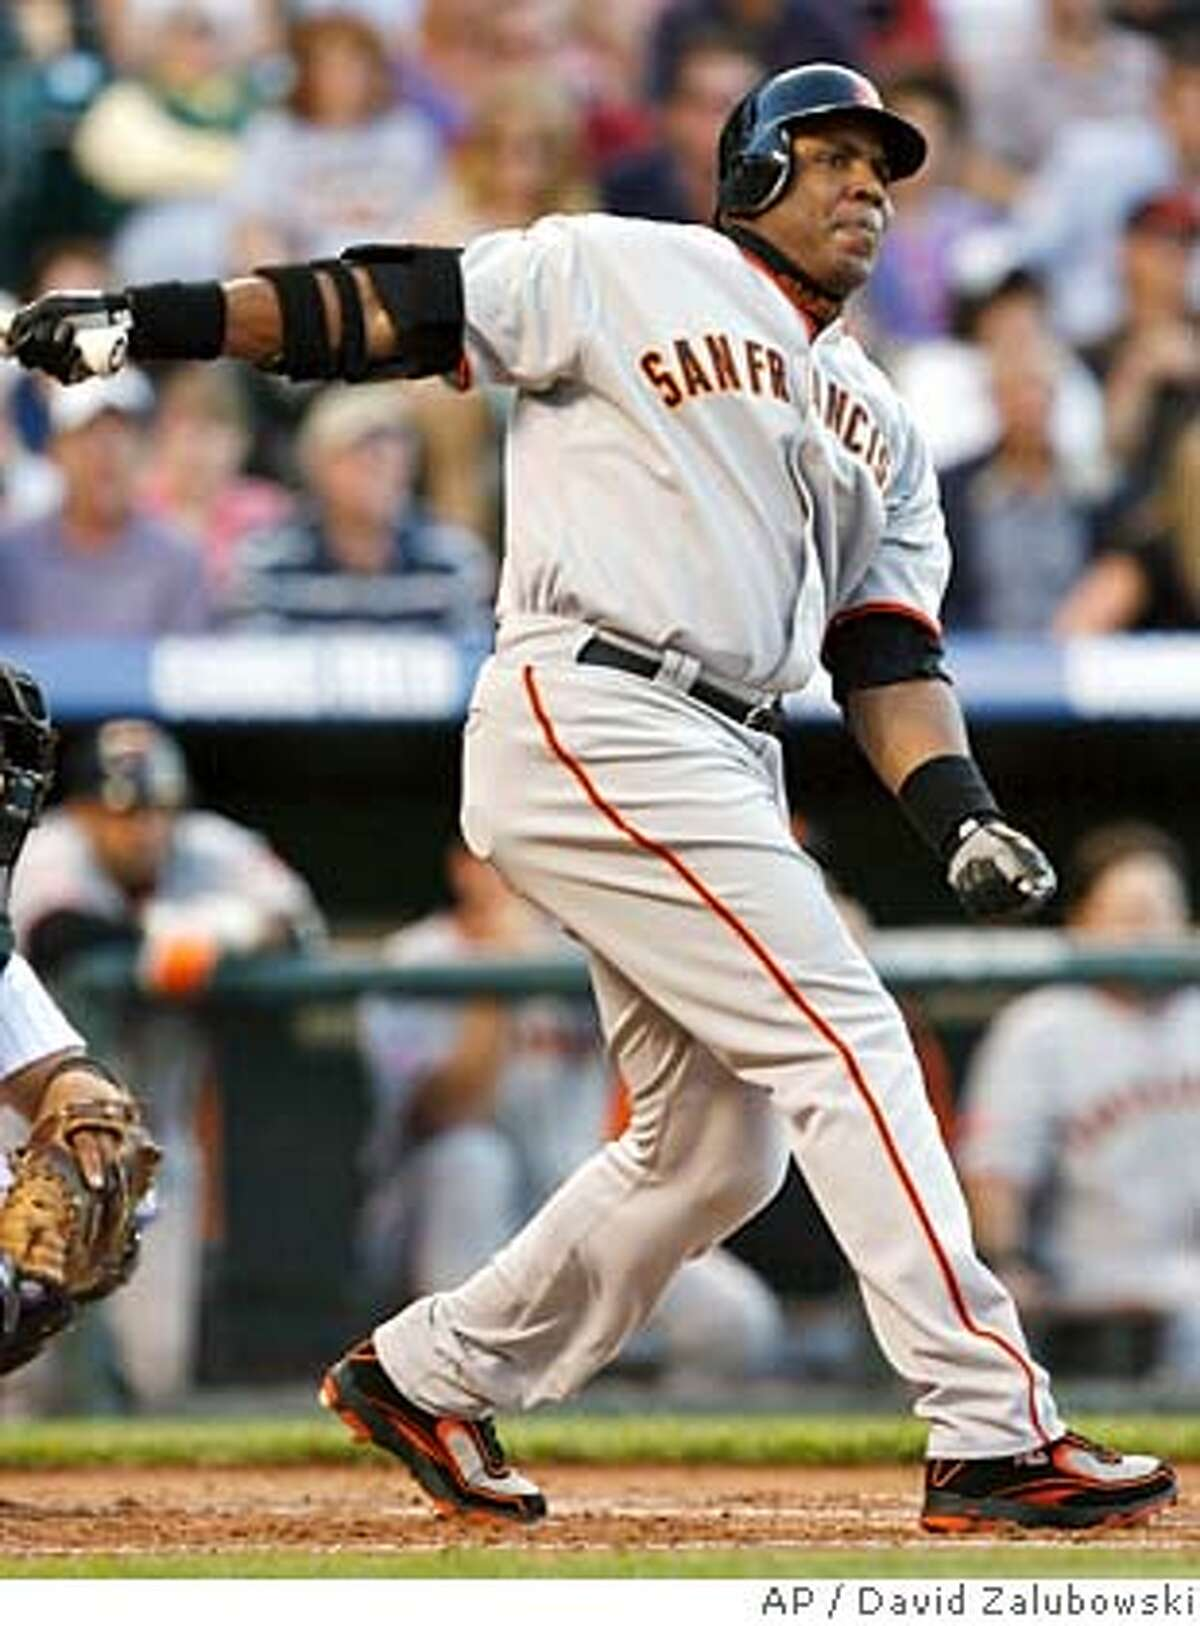 San Francisco Giants' Barry Bonds lines-out to Colorado Rockies first baseman Todd Helton in the second inning in Denver on Friday, May 11, 2007. (AP Photo/David Zalubowski)